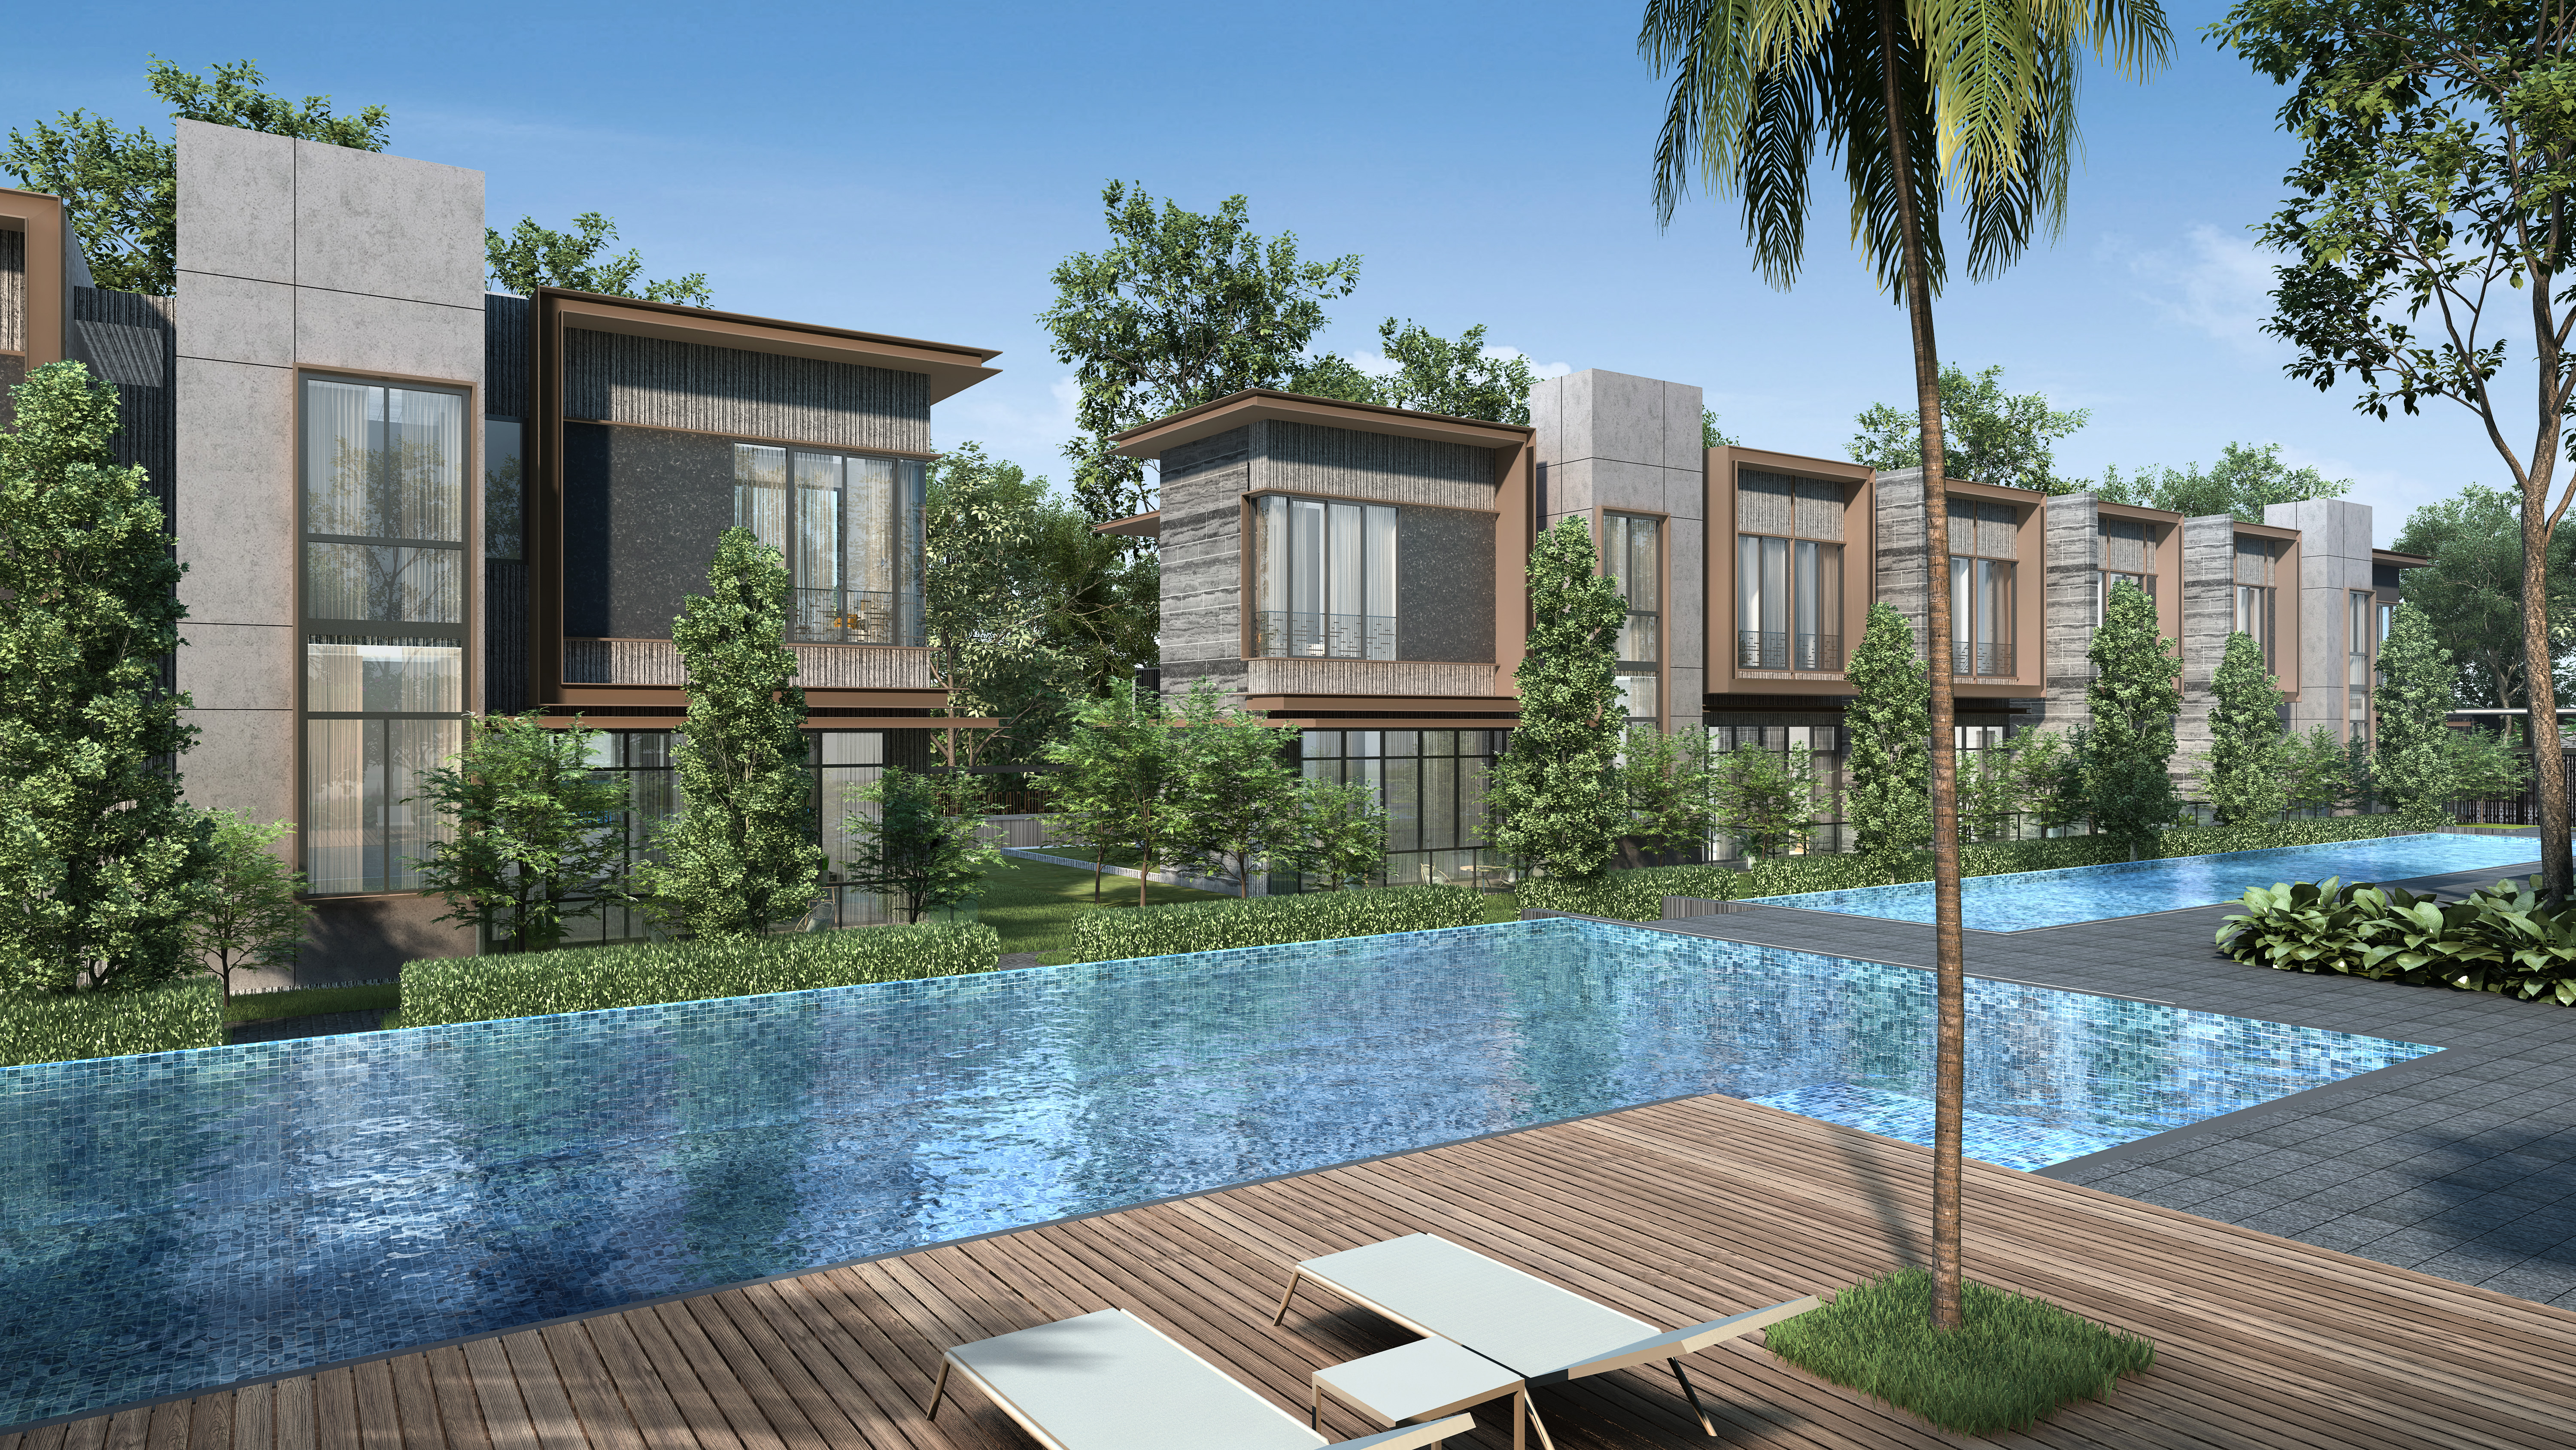 PARC CLEMATIS - About 30% of the units, or 440 units, will be launched for sale on the August 31 launch